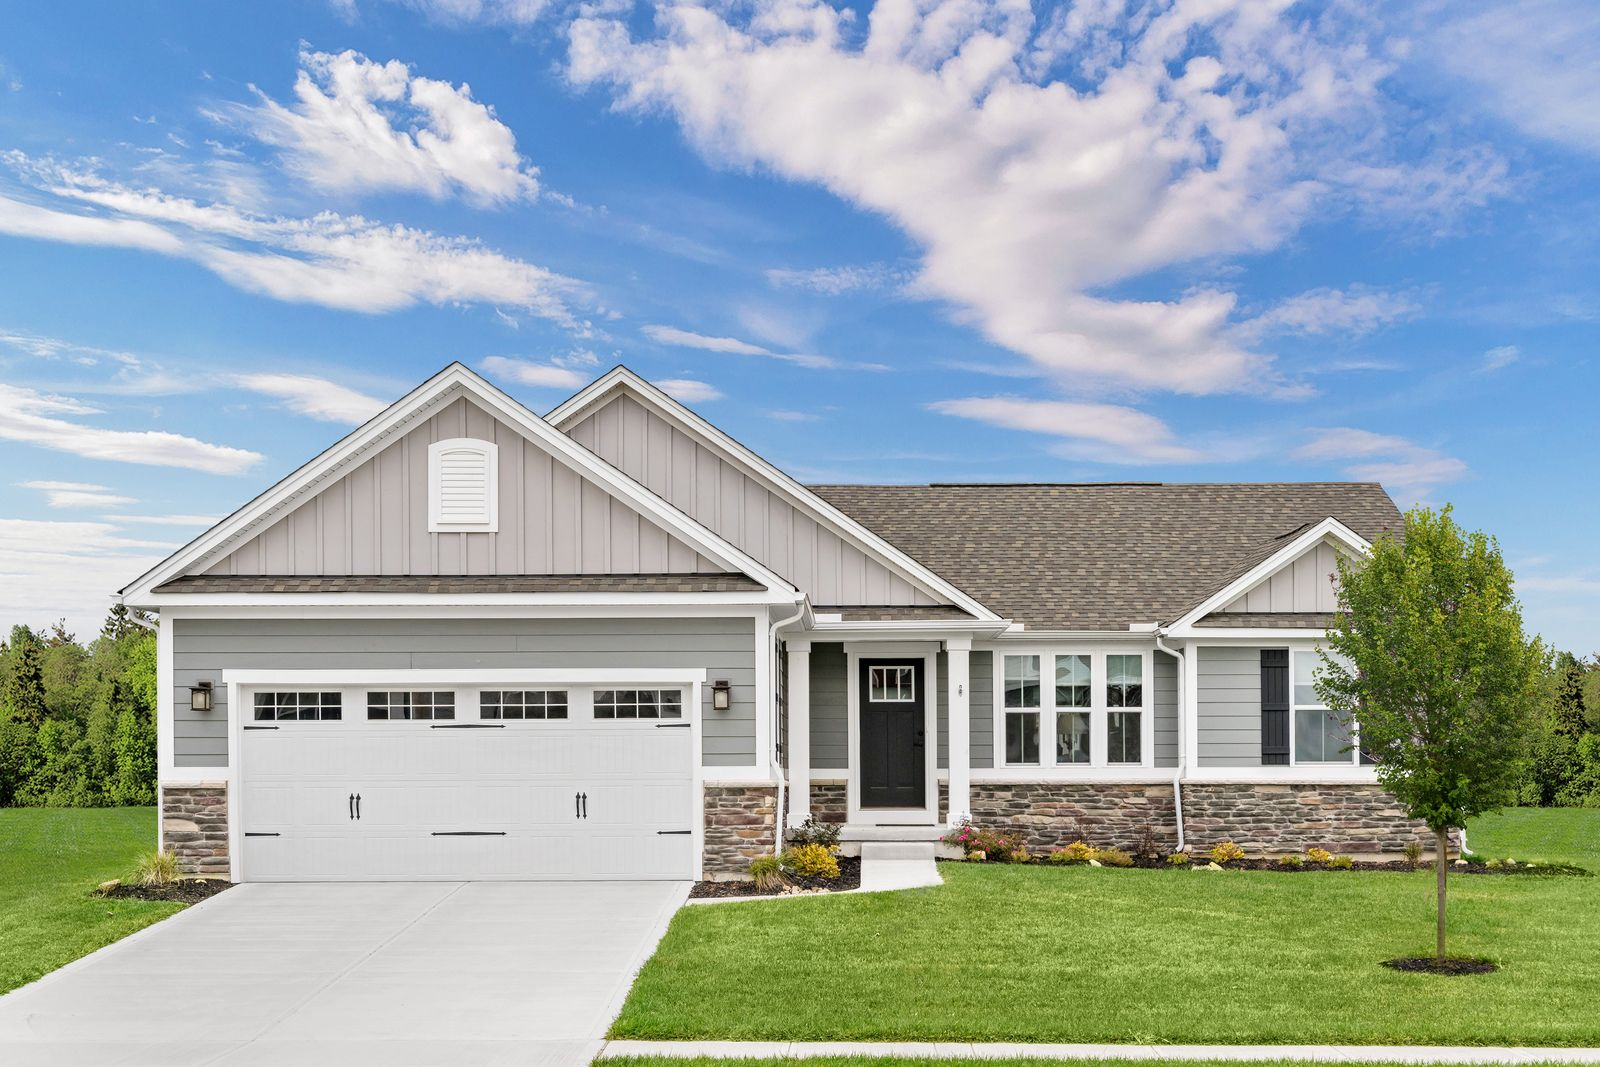 WELCOME HOME TO WINDEMERE, WELLINGTON'S ONLY NEW CONSTRUCTION COMMUNITY:Only new construction in Wellington! Ranch & 2-story homes off Rt 58, on homesites up to 1/2 acre! Get more than you ever thought from the low $200s.Click here to schedule your visit today!